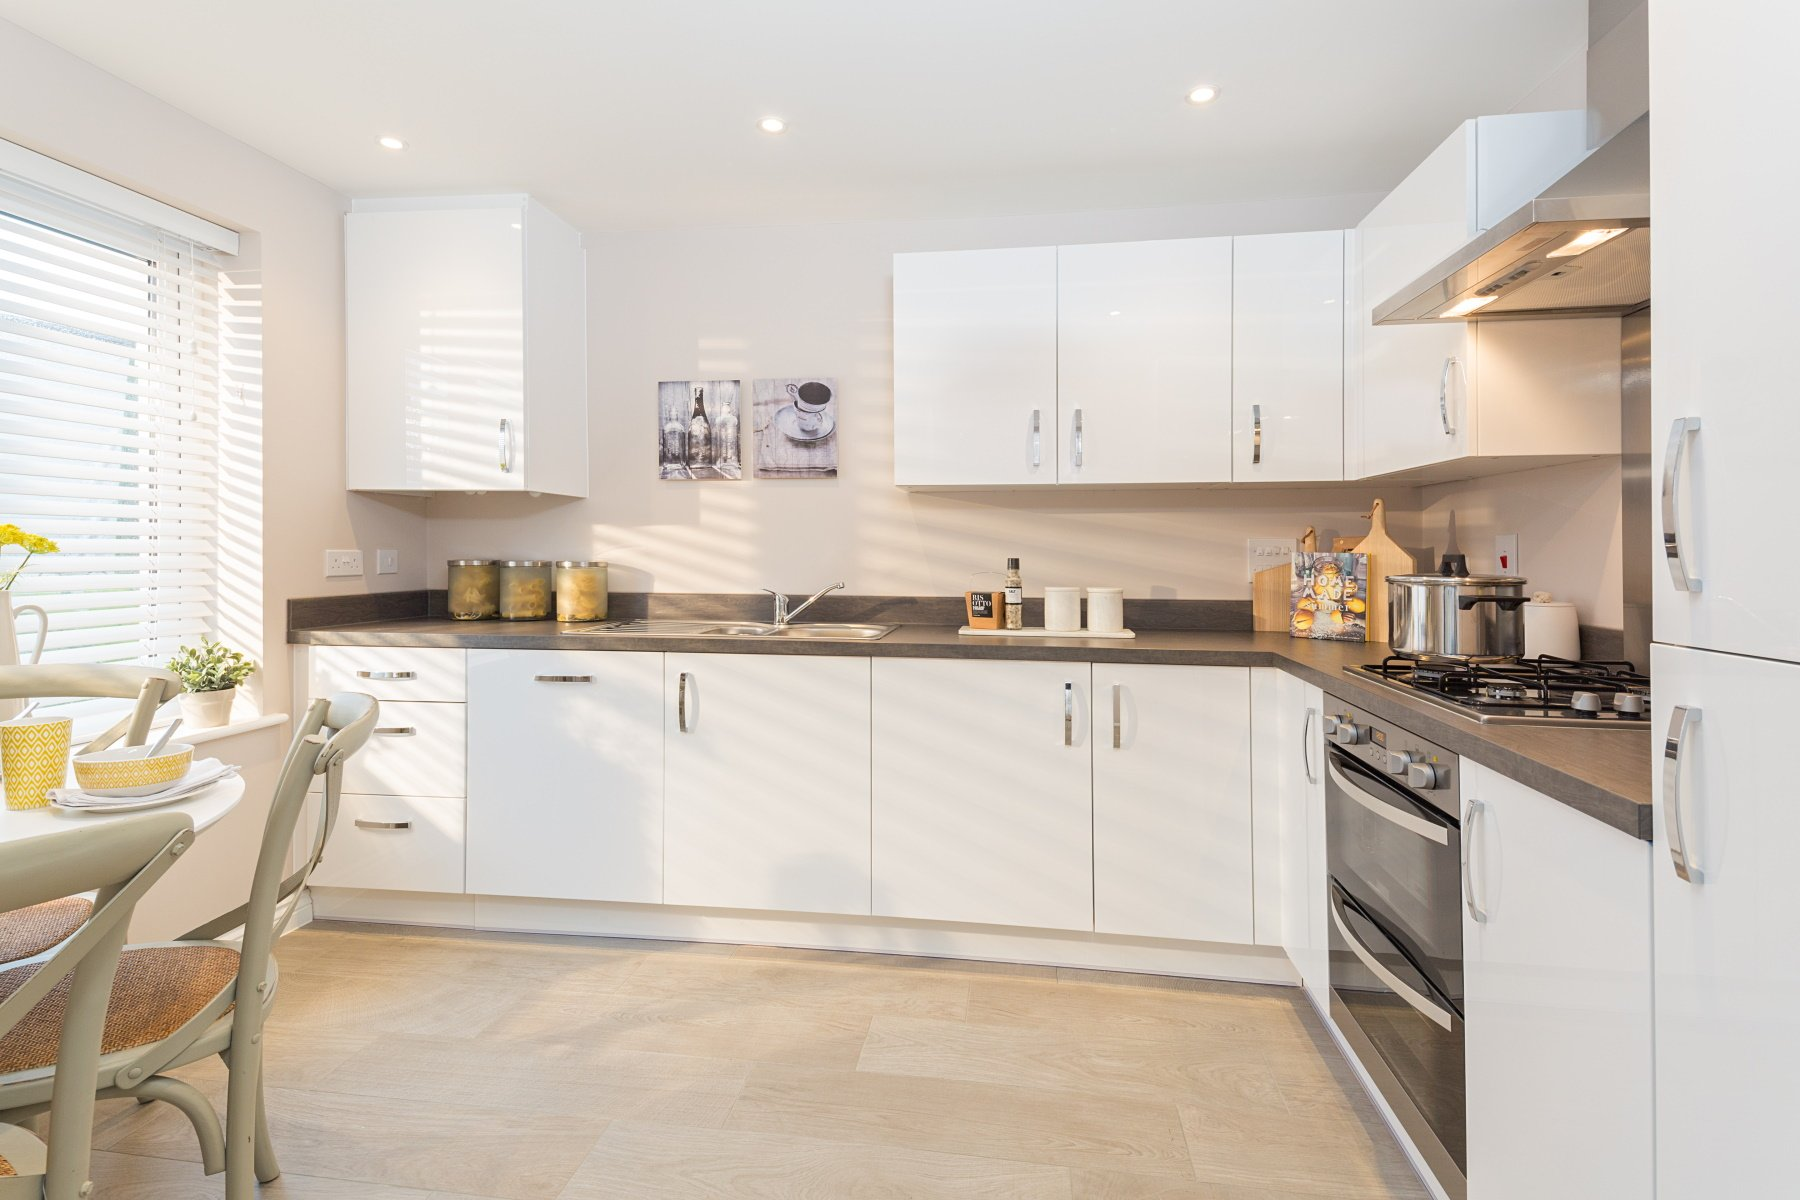 TW Exeter - Mayfield Gardens - Benford example kitchen 2